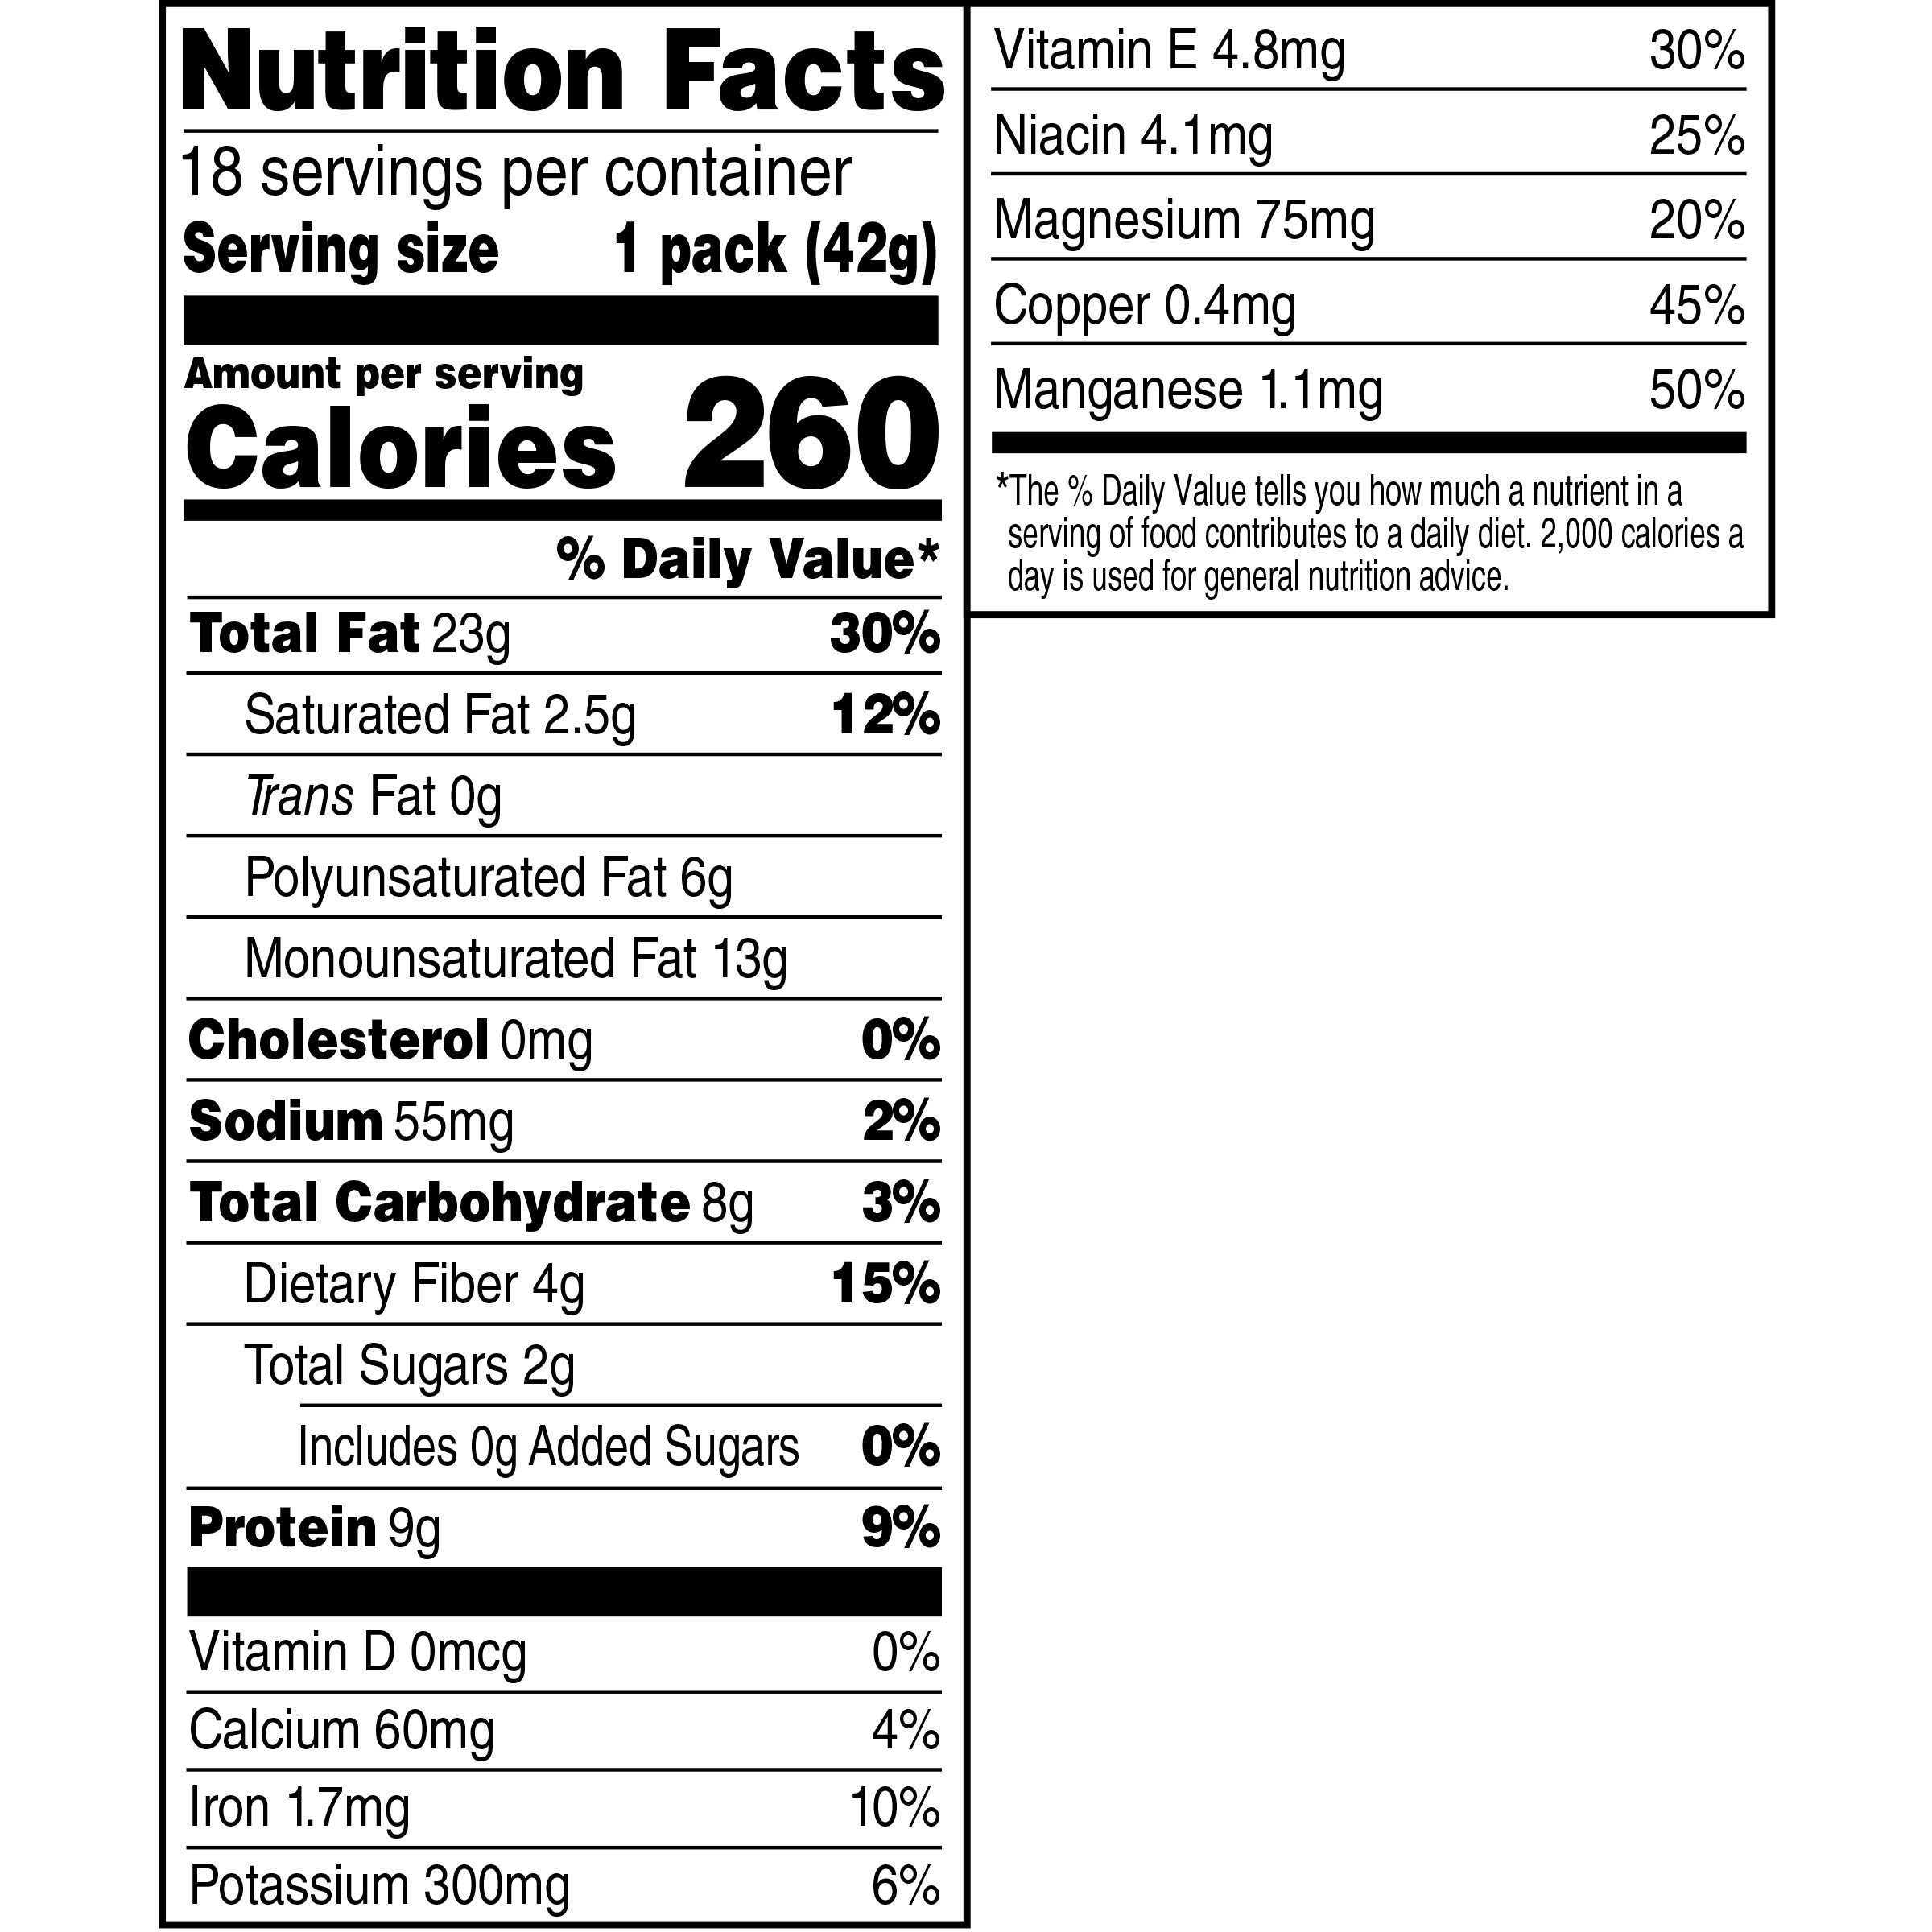 NUTrition Heart Healthy Nut Mix (1.5 oz Bags, Pack of 18) by Planters (Image #2)